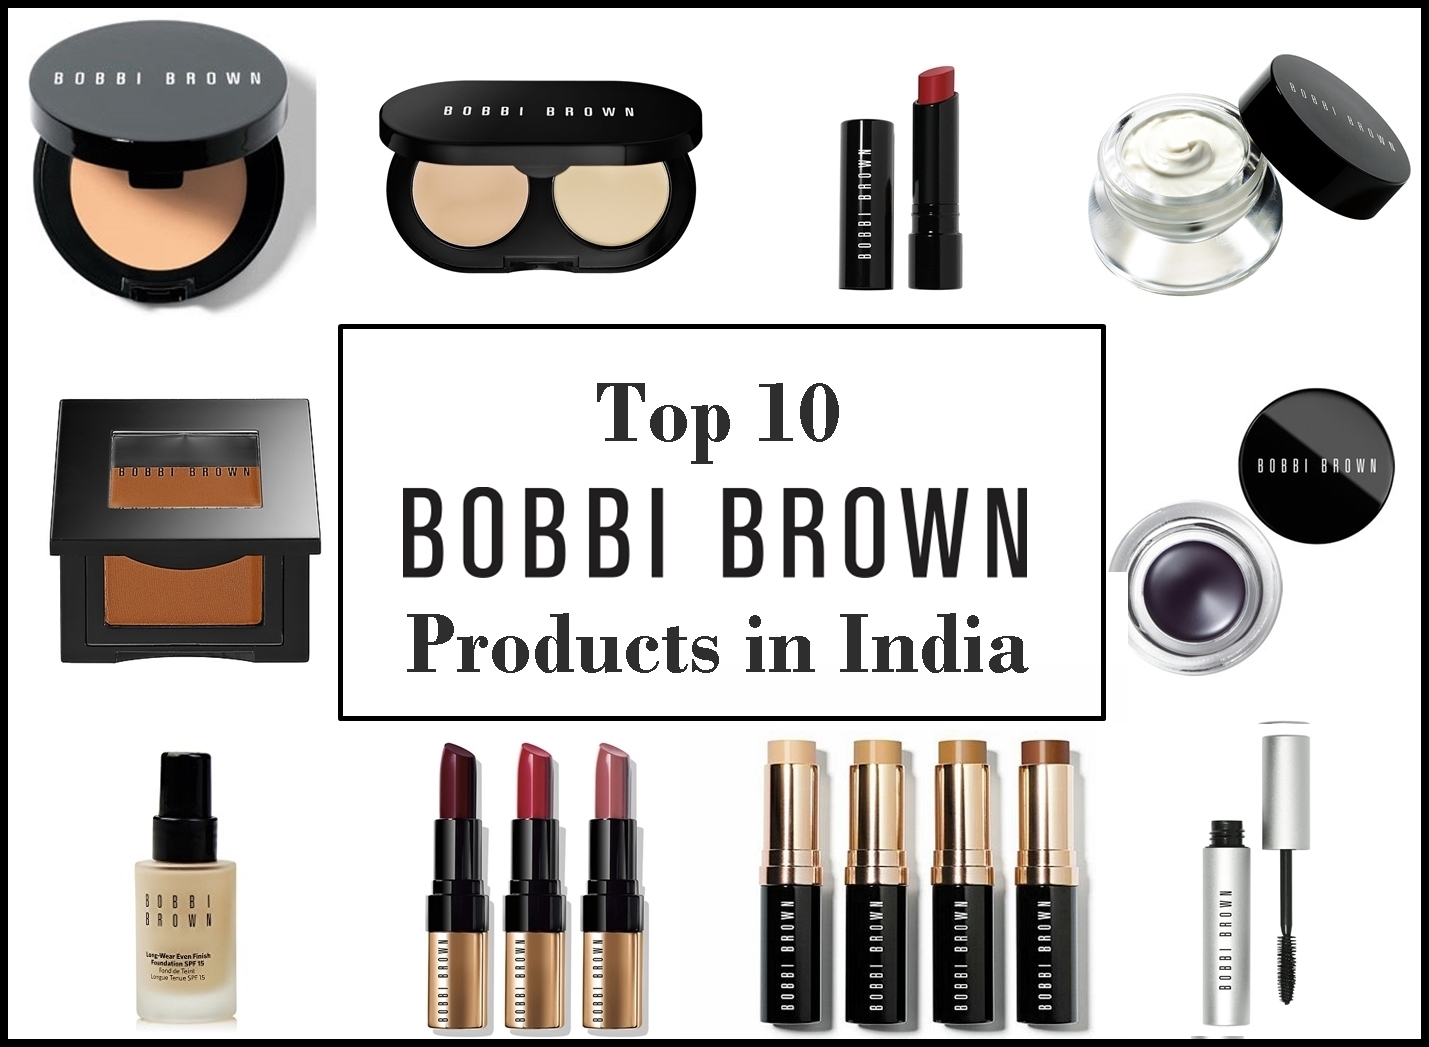 Top 10 Best Bobbi Brown Products in India, Prices, Buy Online